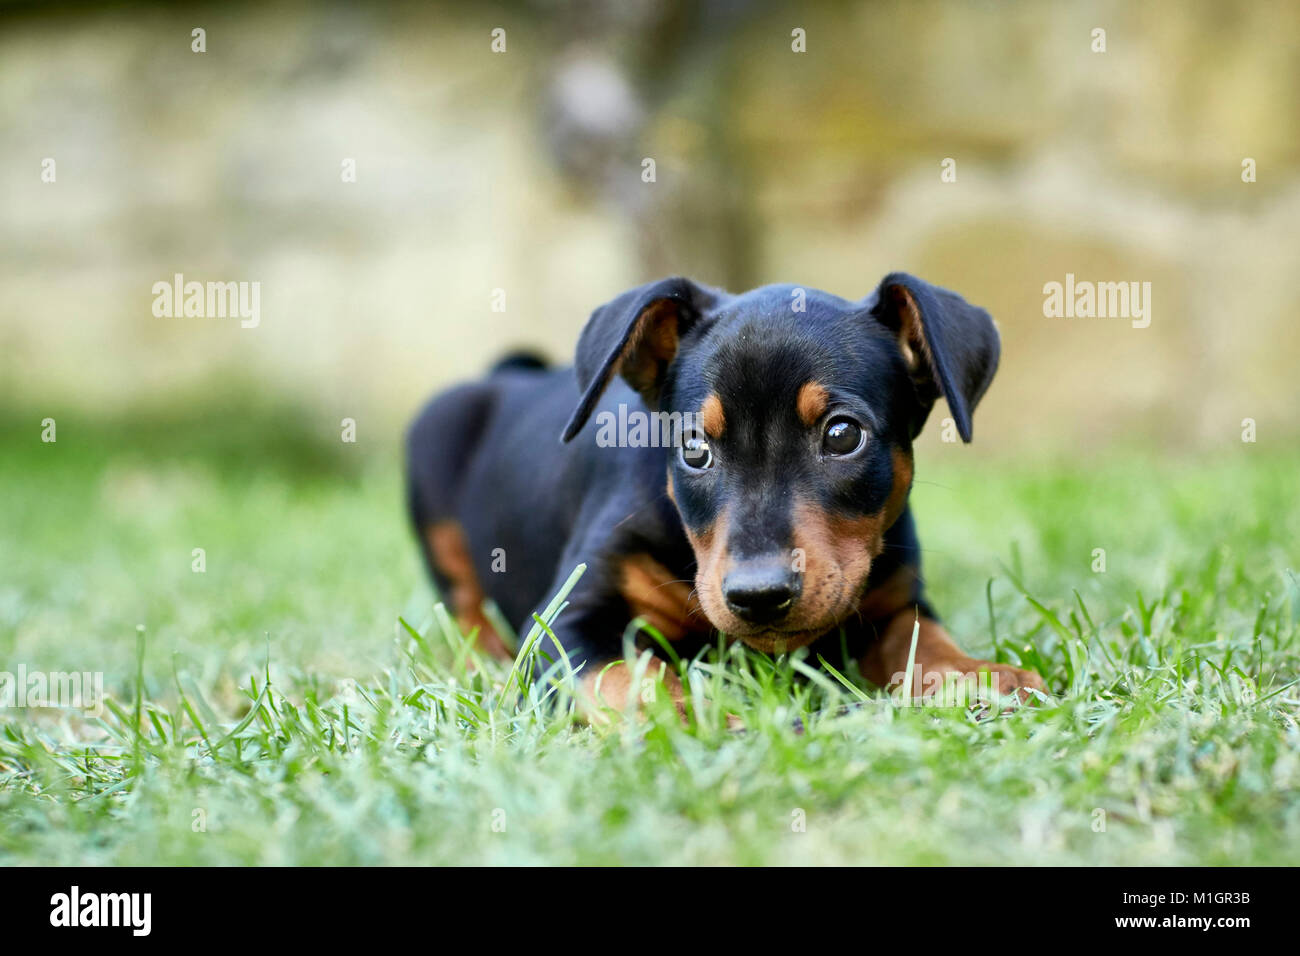 German Pinscher. Puppy lying on a lawn. Germany. - Stock Image